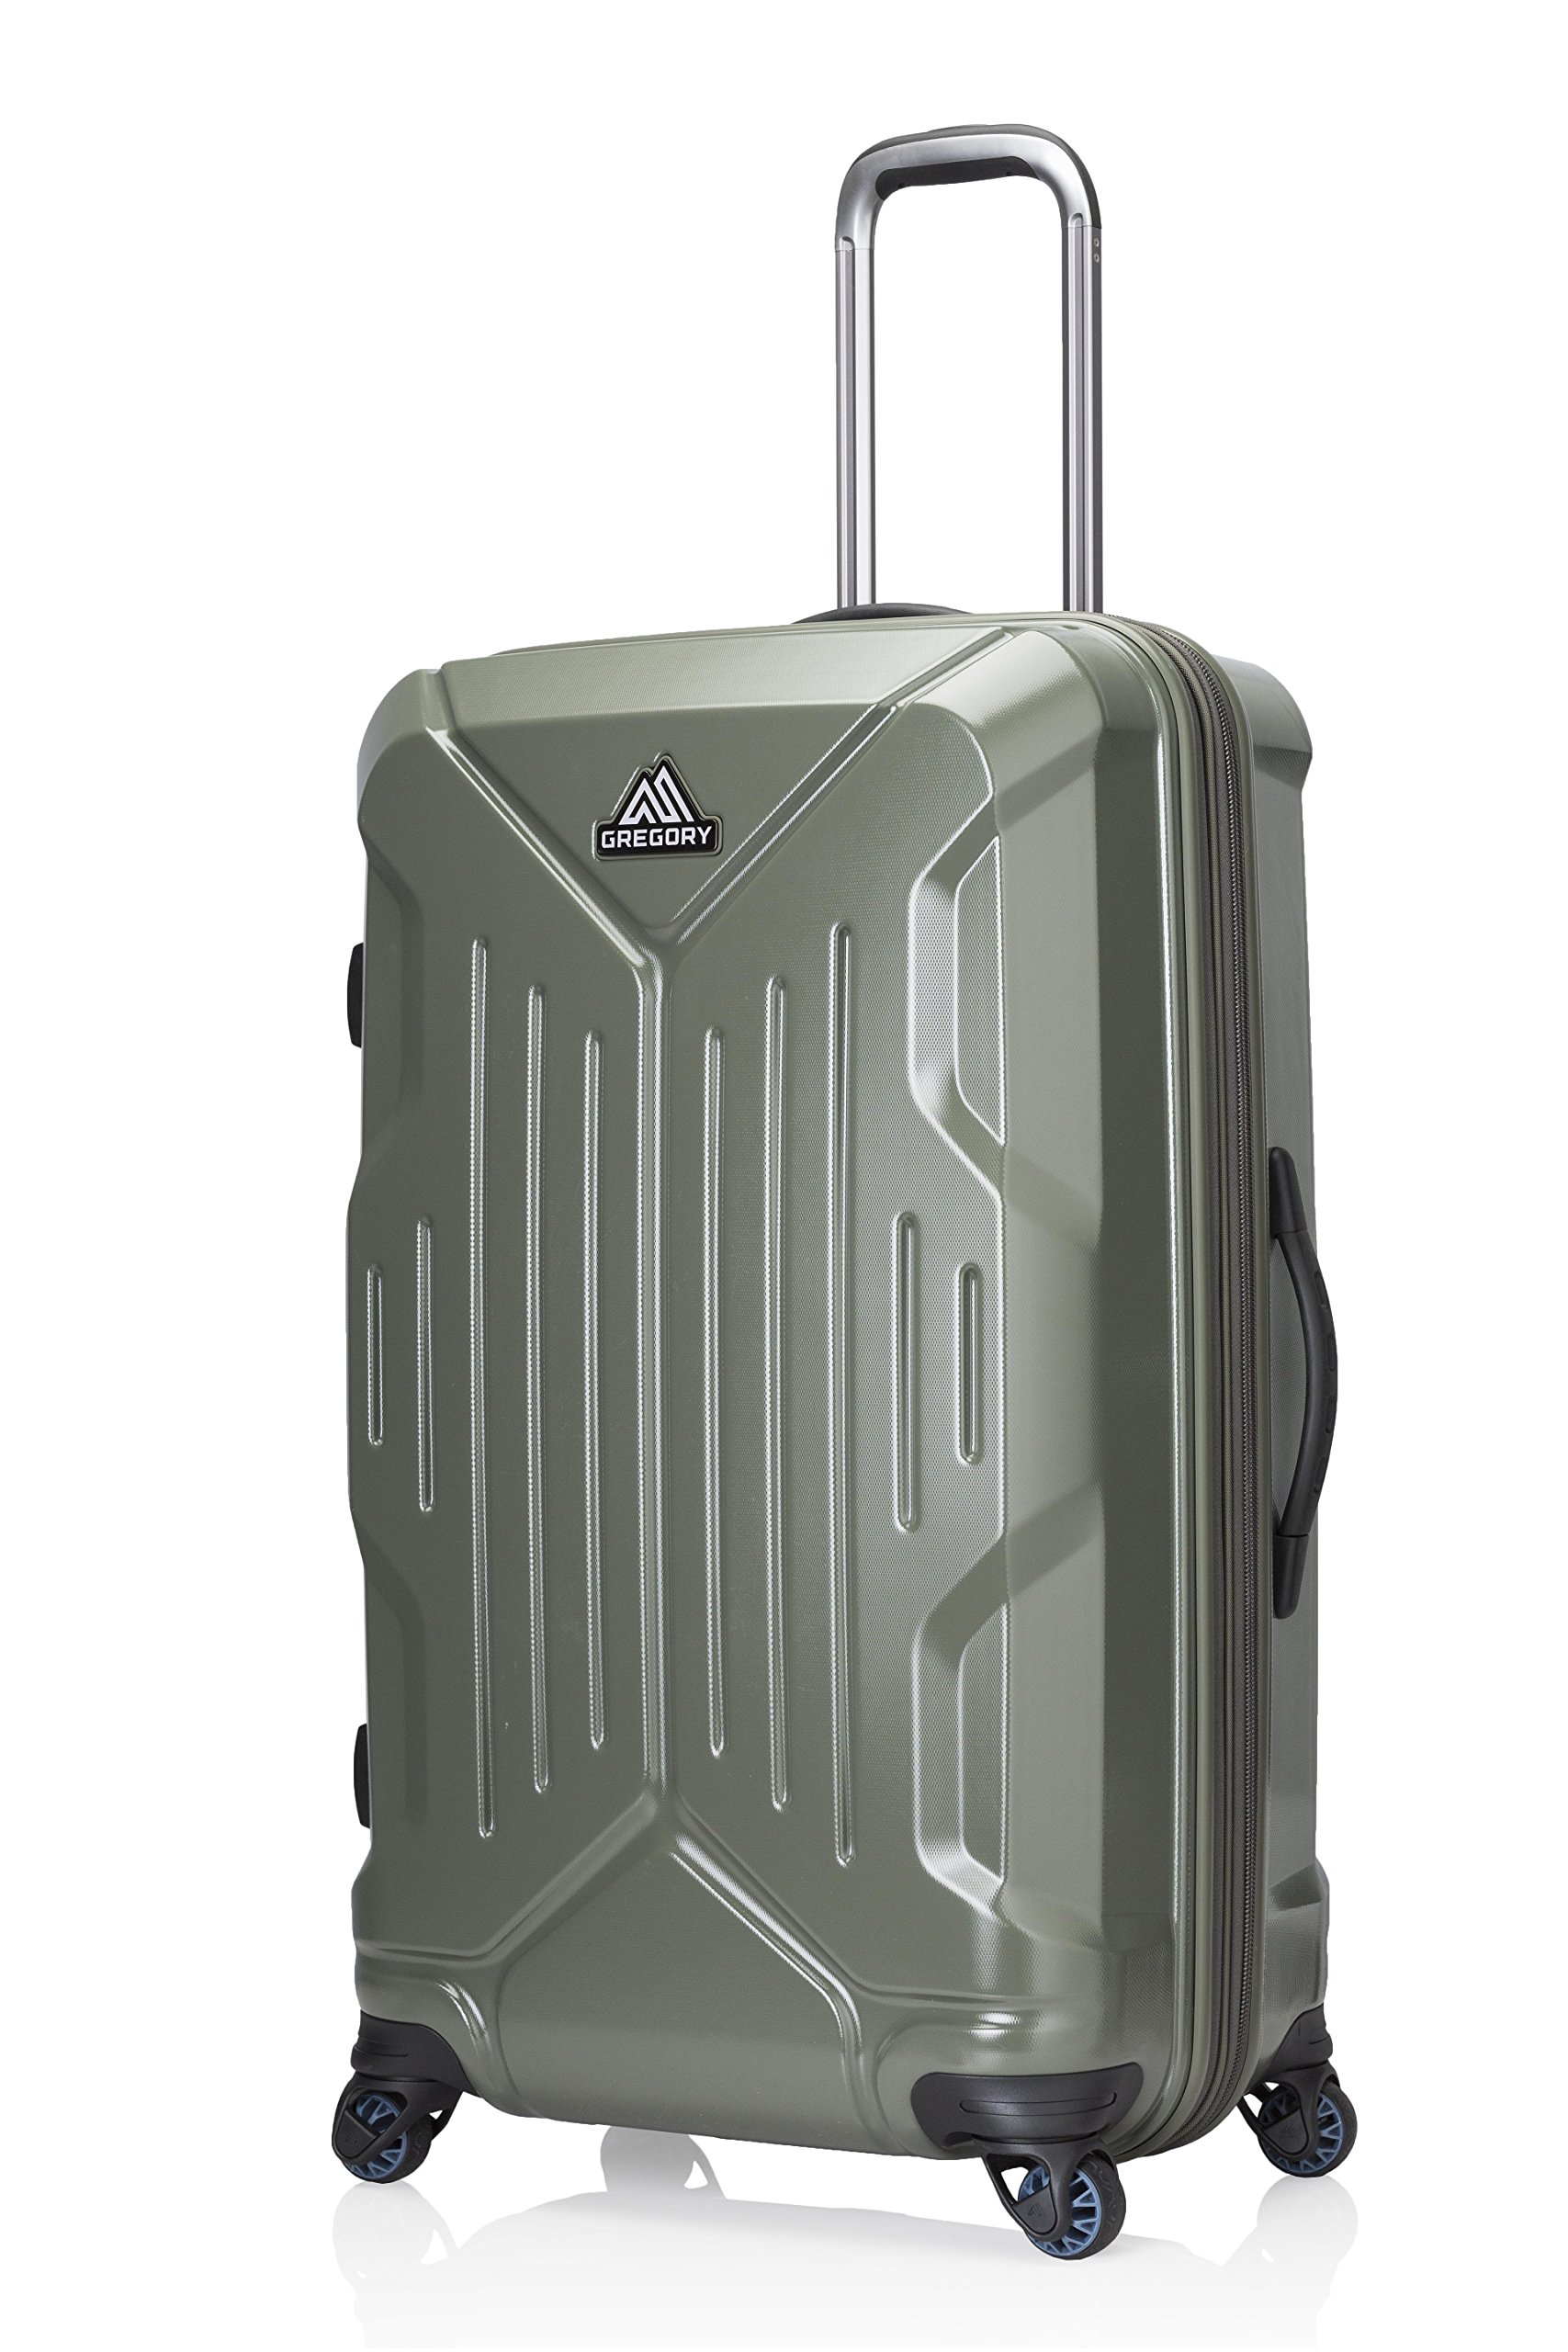 Gregory Mountain Products Quadro Hardcase 30 Inch Hardsided Roller | Travel, Business, Vacation | Multi-Directional Spinner Wheels, Durable Polycarbonate Shell, Waterproof Interior Pocket